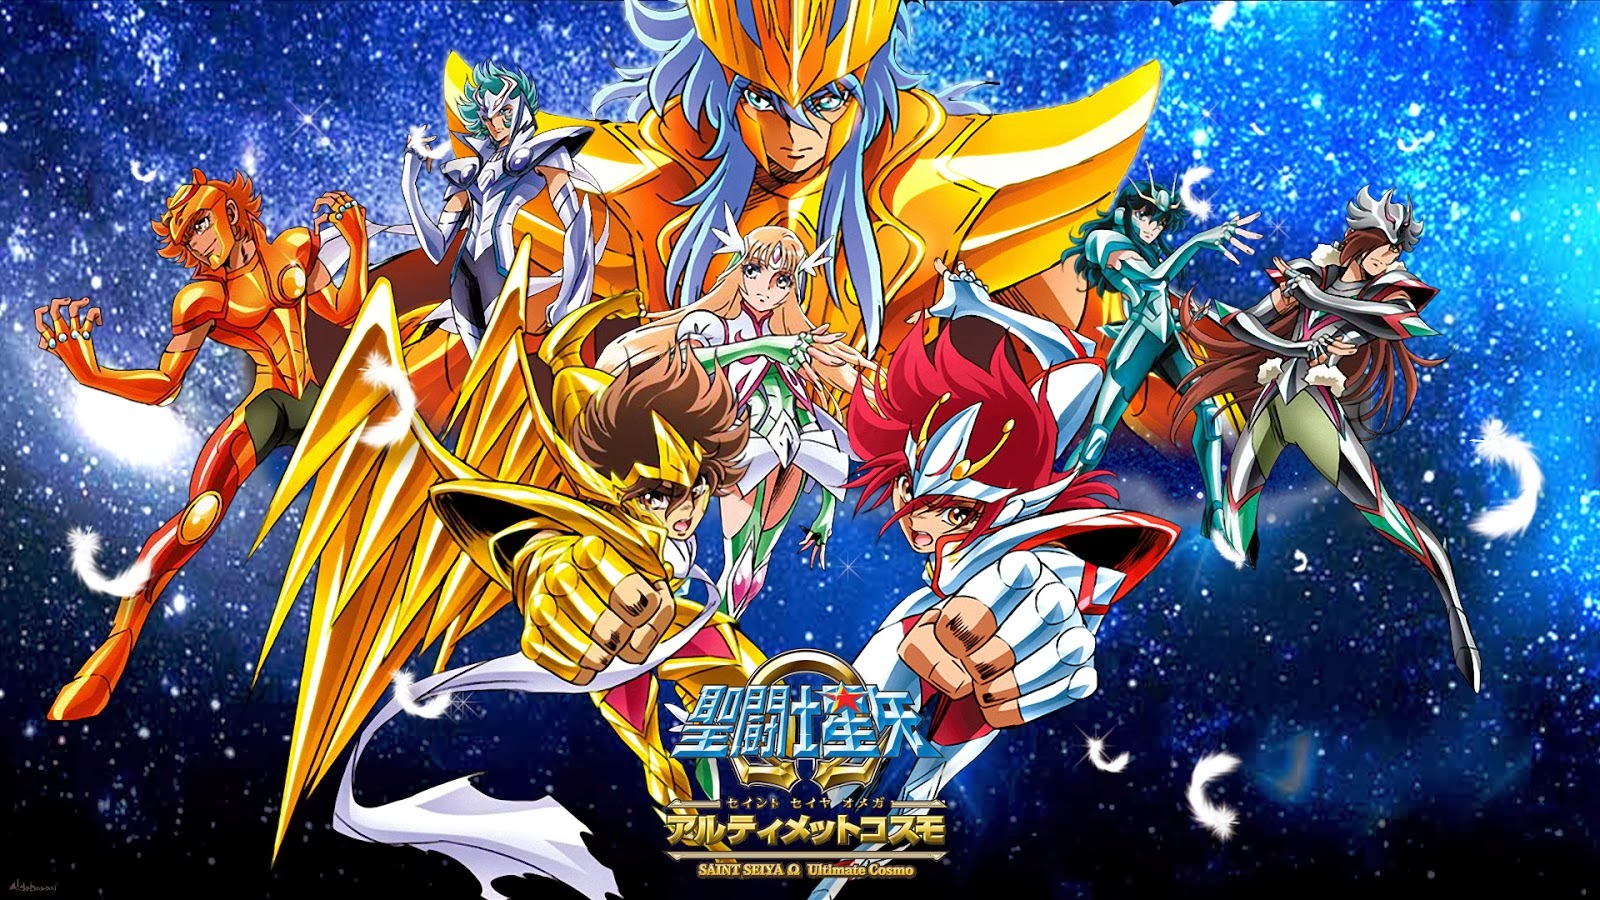 saint seiya omega anime final en marzo